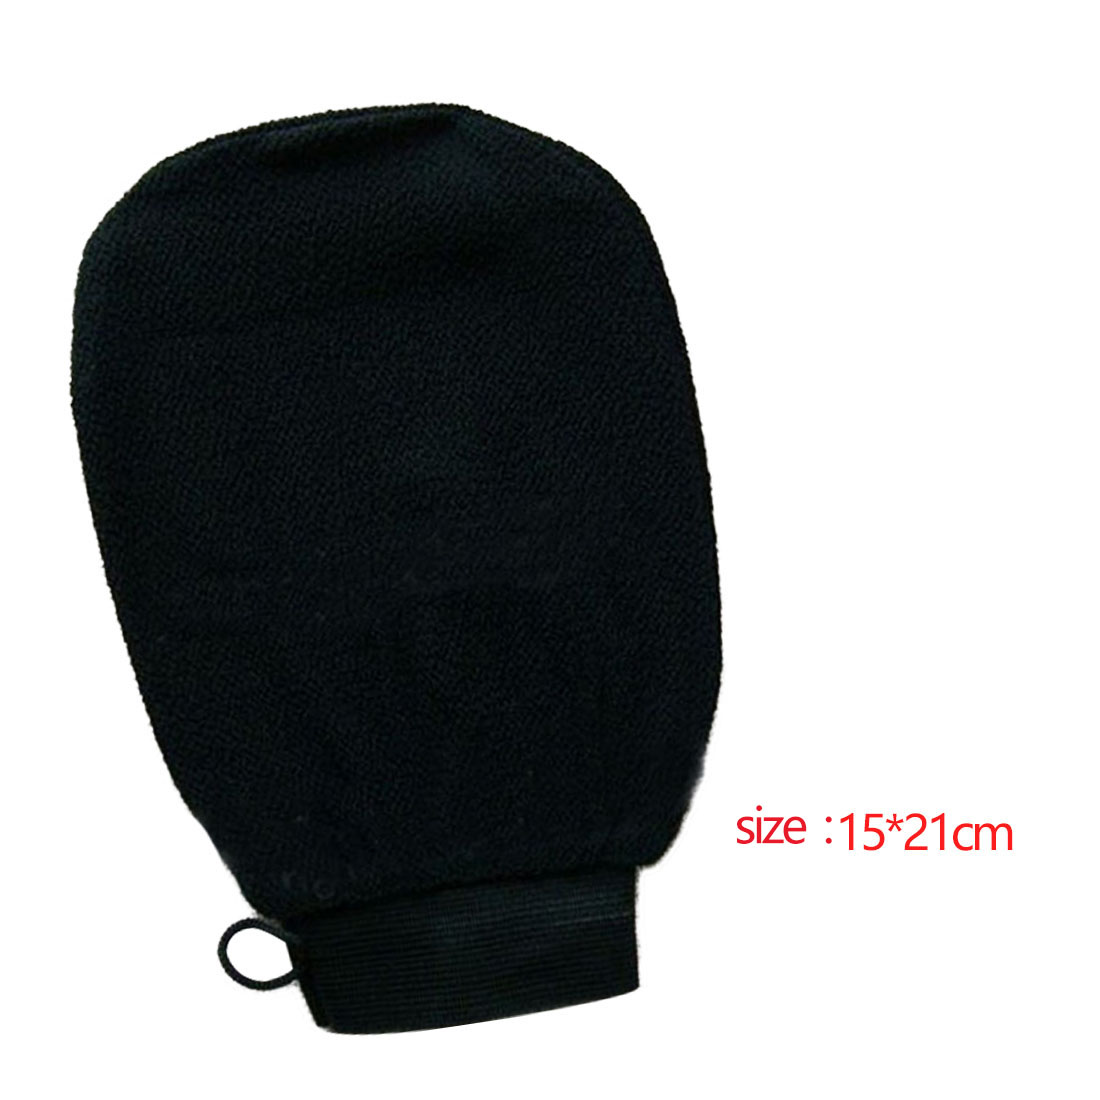 Good Quality 1 PC Magic Black Exfoliator Bath Glove Body Cleaning Scrub Mitt Rub Dead Skin Removal Shower Spa Massage